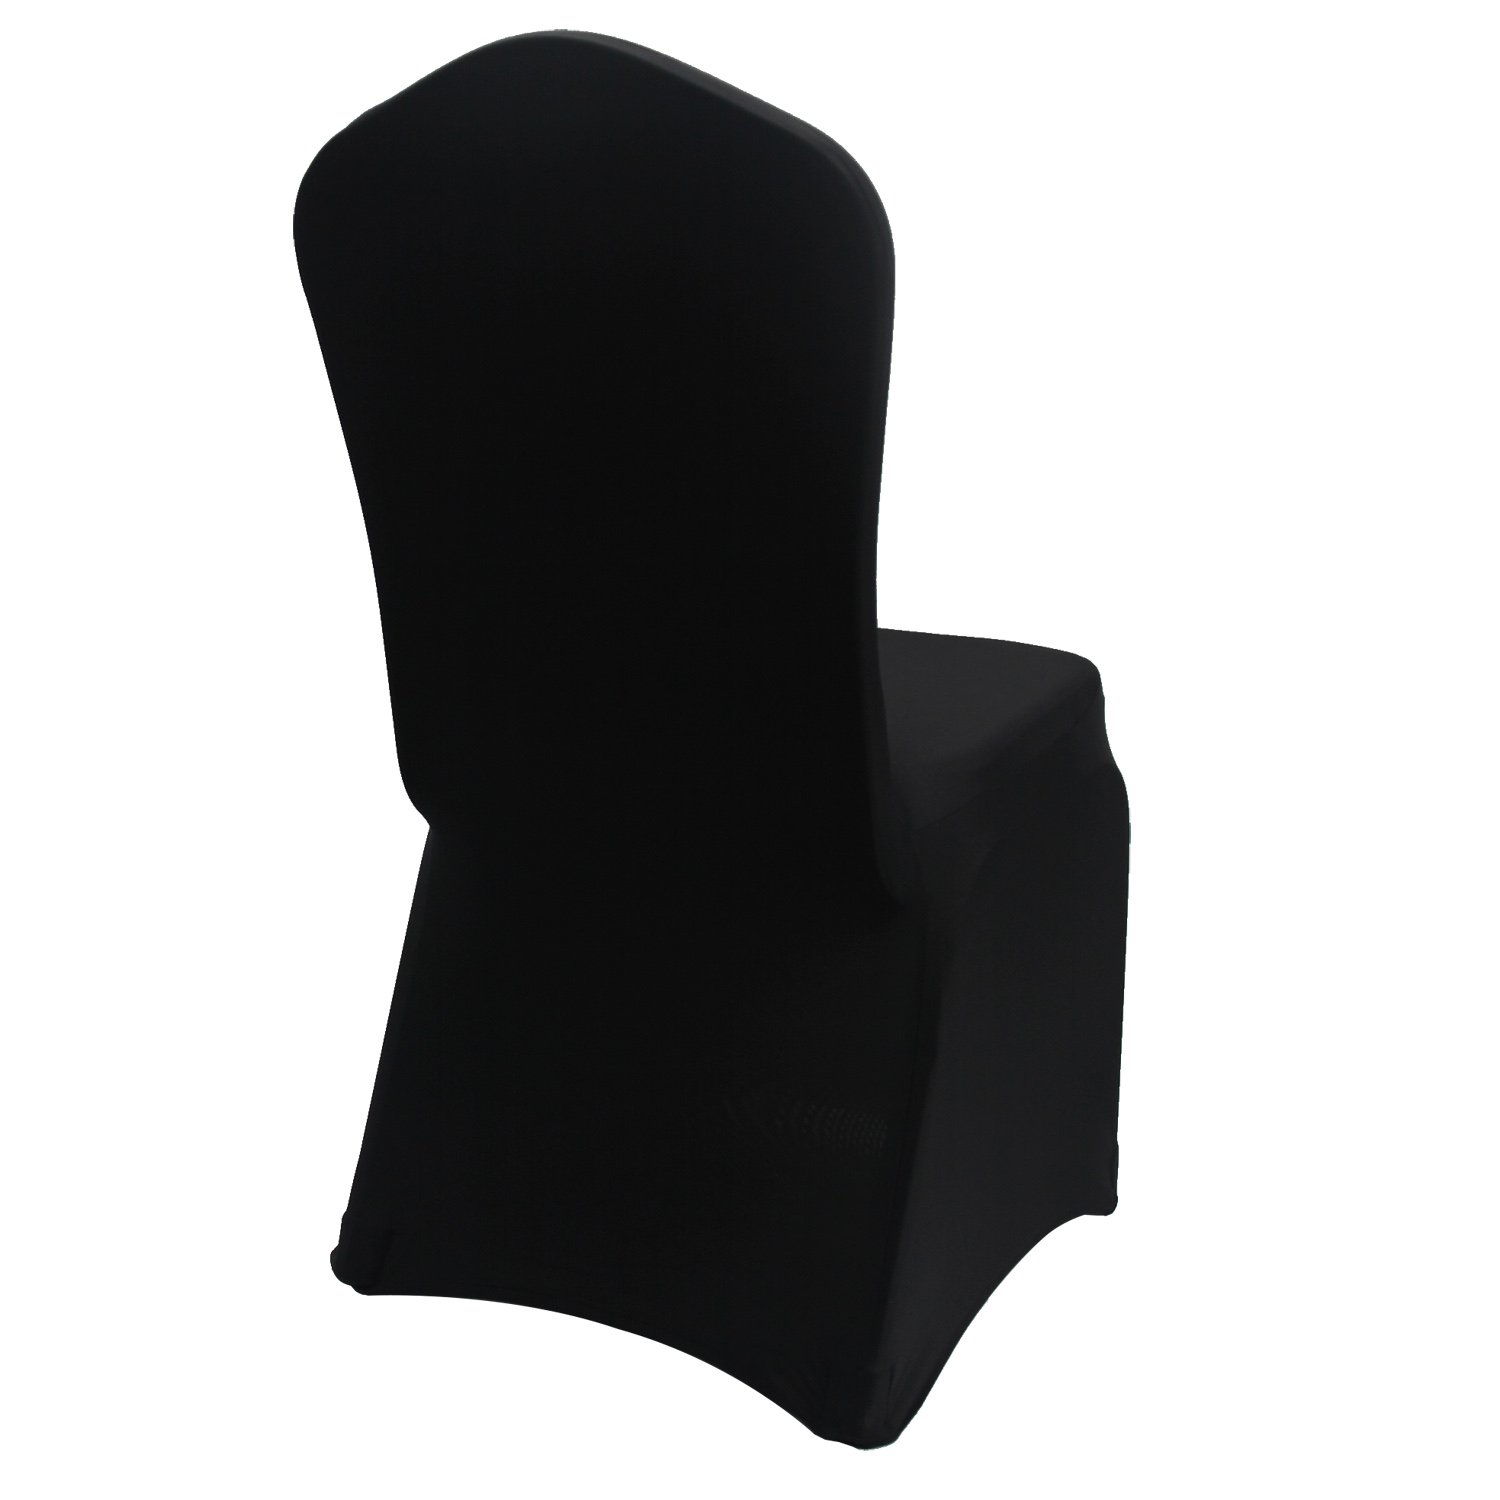 Cool Black Stretch Spandex Chair Covers Wedding Universal 50 Pcs Banquet Wedding Party Dining Decoration Scuba Elastic Chair Covers Black 50 Caraccident5 Cool Chair Designs And Ideas Caraccident5Info